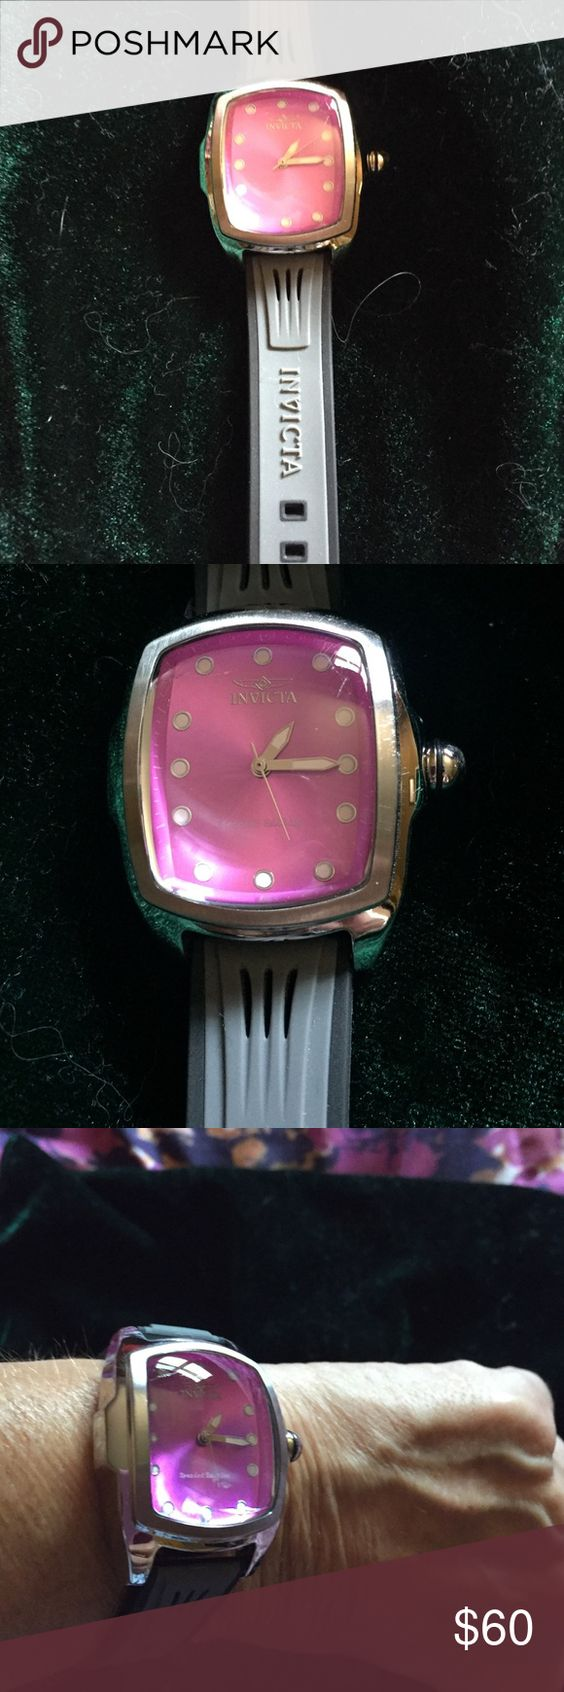 Invicta watch see Dimensions in Pic Black with pink face stylish watch NWOT but have box it came in. Invicta Accessories Watches